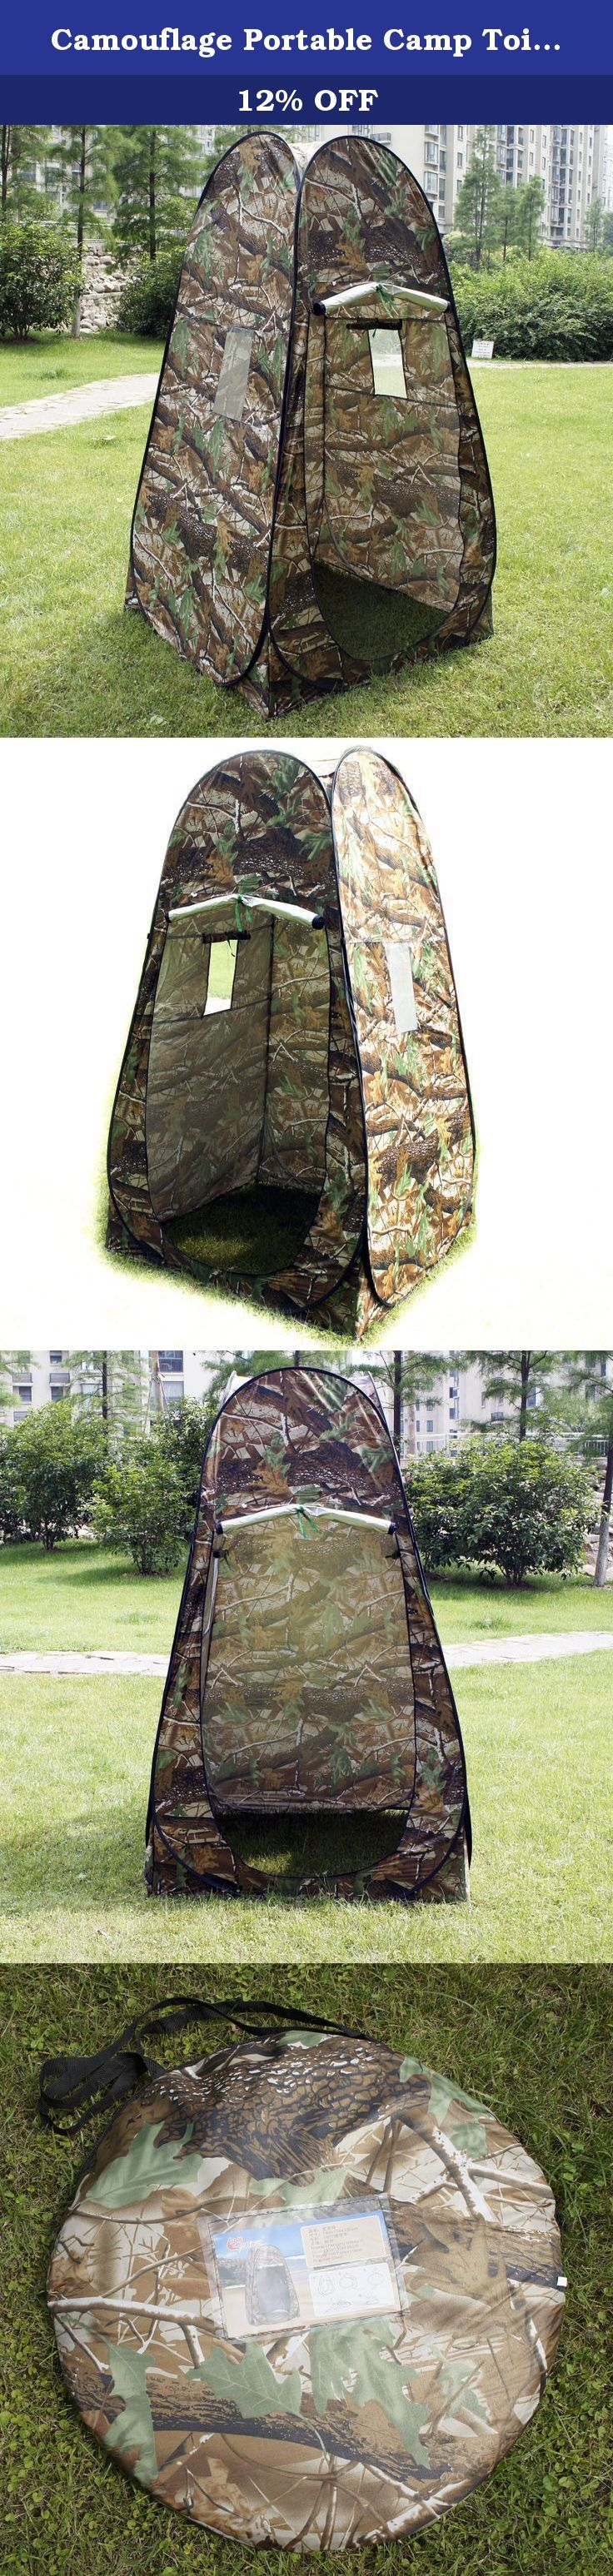 Camouflage Portable Camp Toilet Pop Up Tent Privacy Shower Changing Room With Bag. The Camouflage Pop-up Tent could offer a private shelter for toilet, changing clothes or camping. It is a good choice to use this item in public places such as park, pool, beach, campsite etc. Just taking the carrying bag around, and unfold the tent! A pop-up tent will show up in front of you. The roof design offers a private room to dress up. Windows will provide better ventilation. The zipper door is easy...